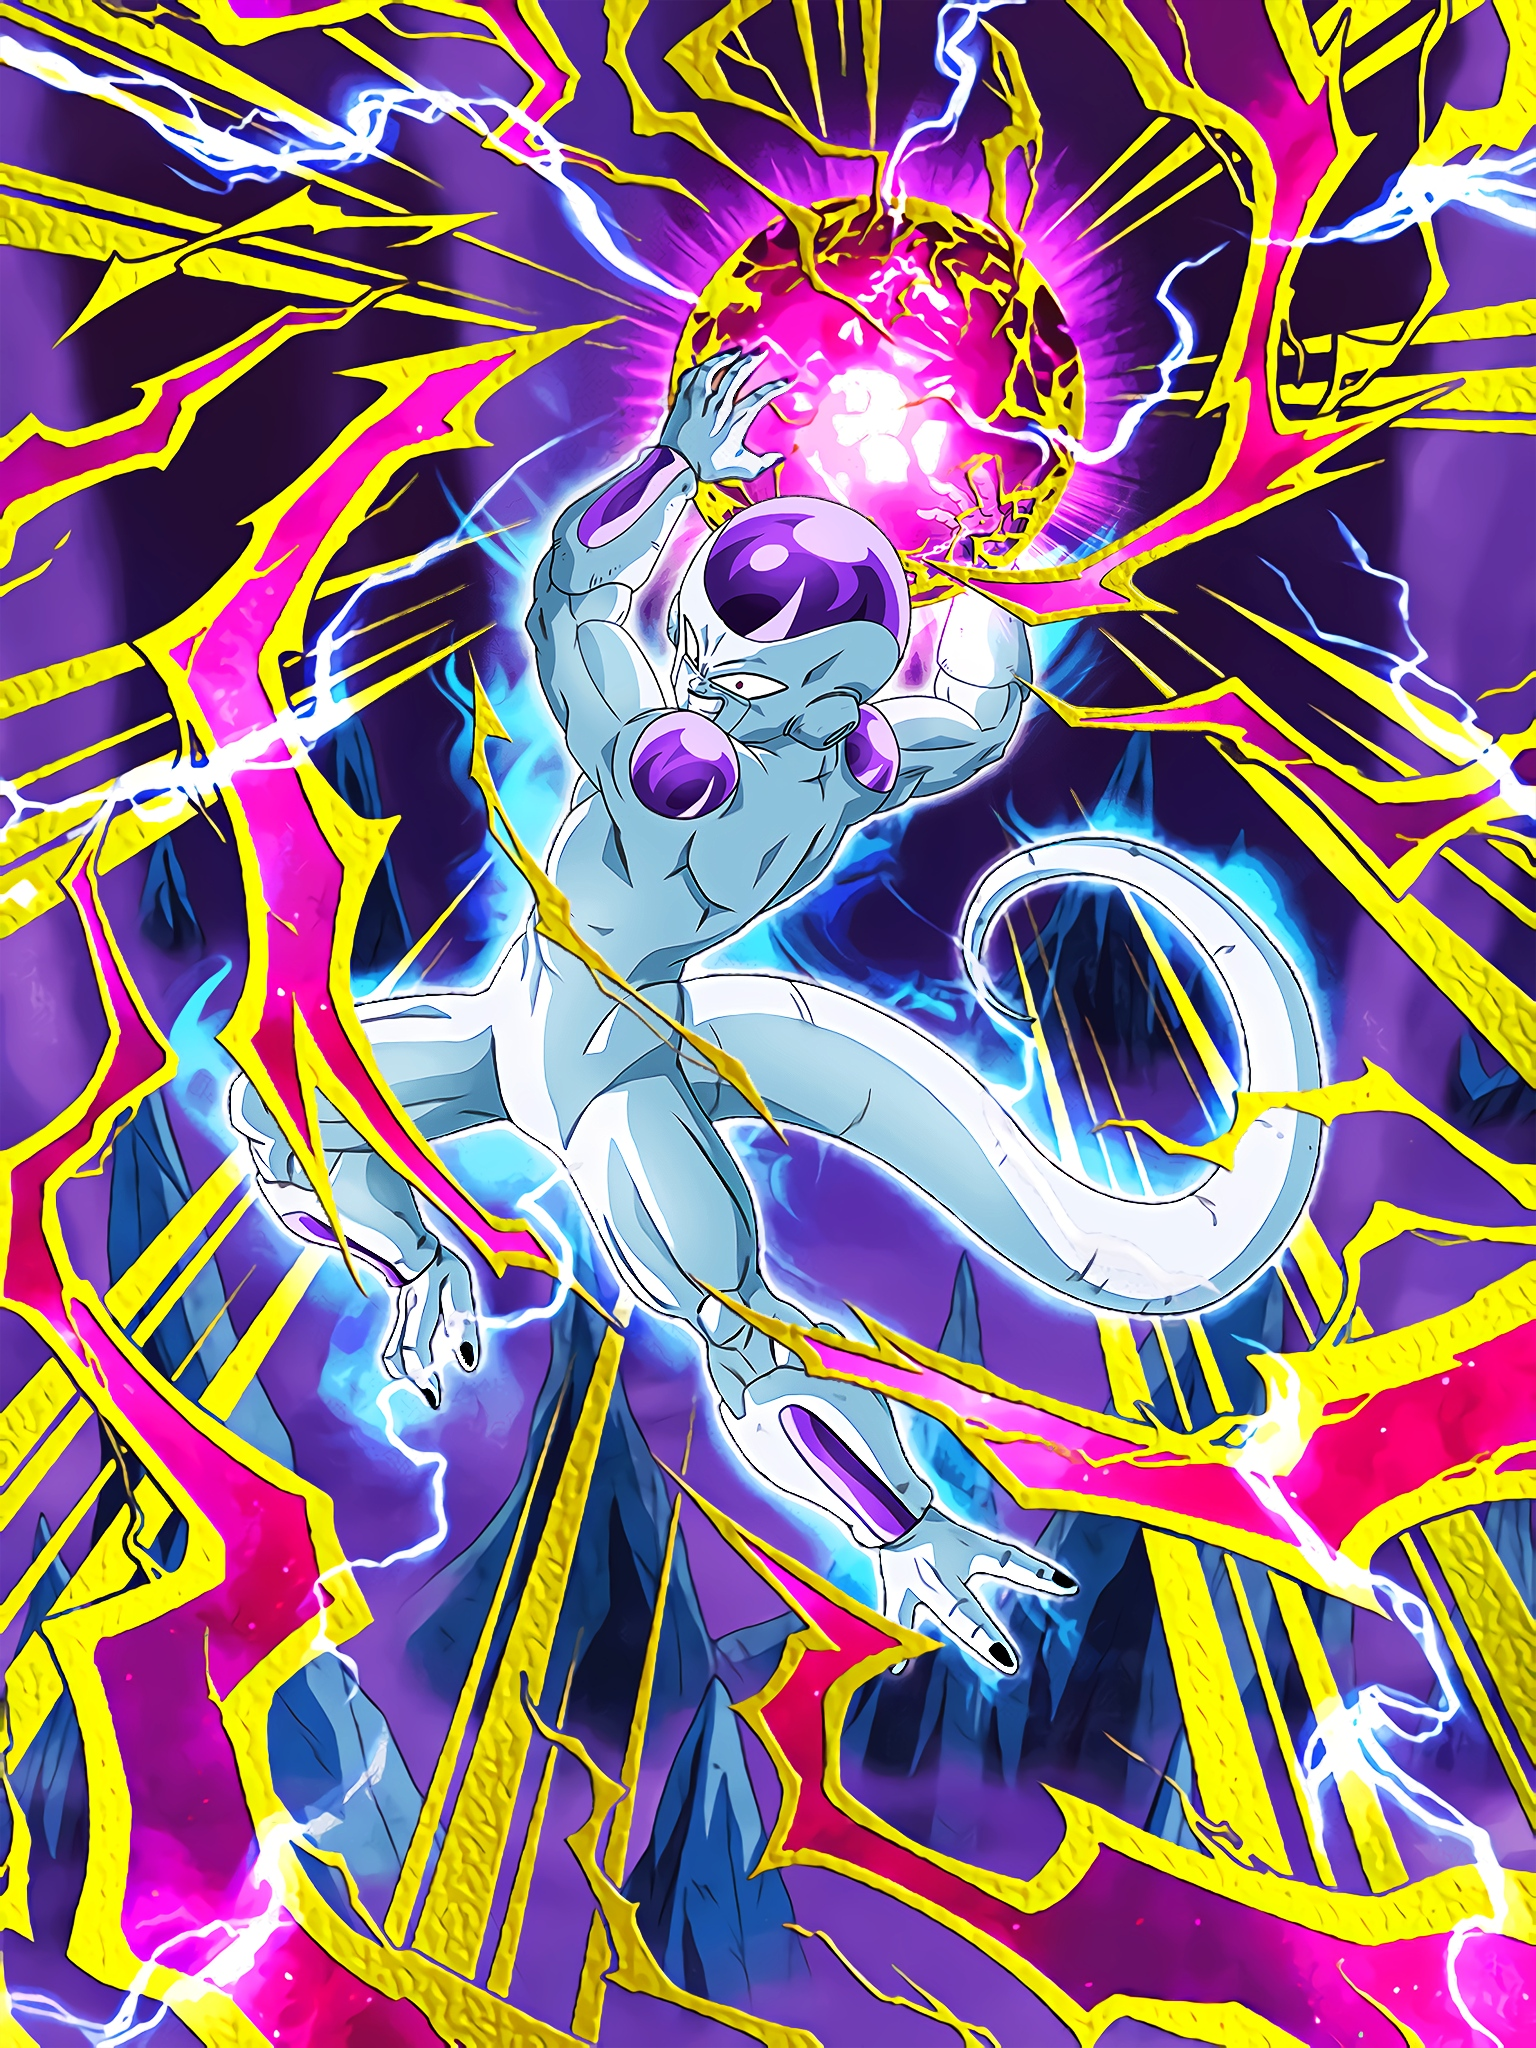 Roars of Anger in Hell Frieza Final Form Art (Dragon Ball Z Dokkan Battle).jpg